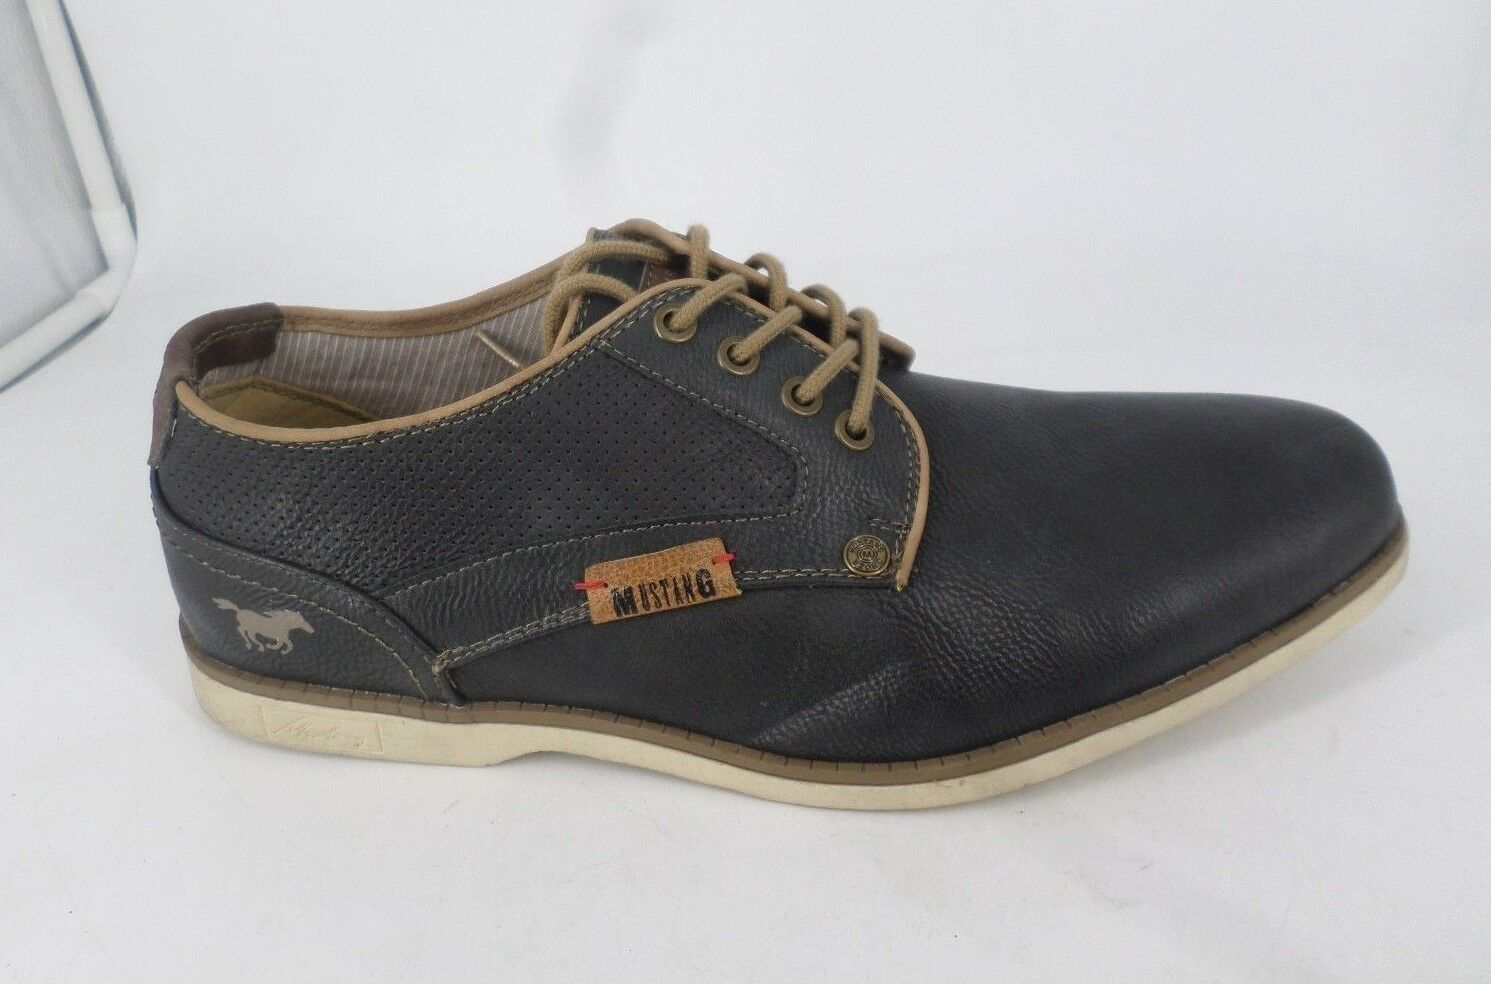 Mustang Co UK Lace Up Derby Schuhes UK Co 8 EU 42 JS085 EE 06 c4281f